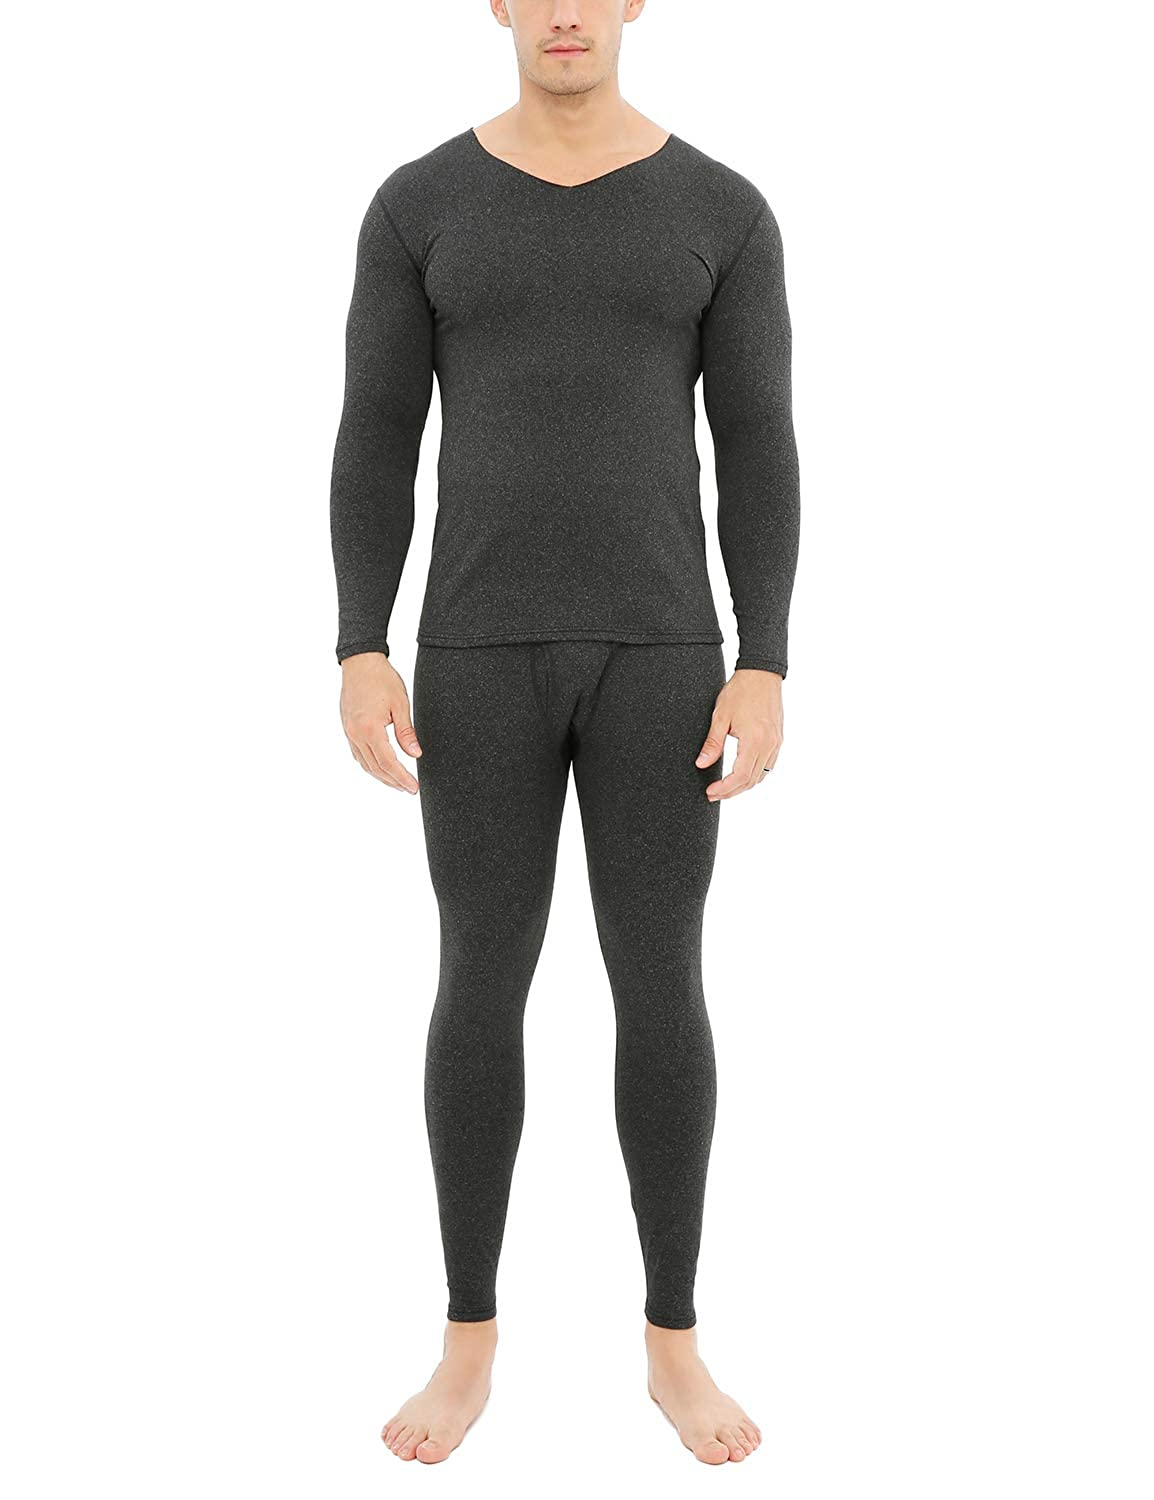 Warmfort Mens Soft Wintergear Cotton Thermal Underwear Mens Classic Midweight Long Johns Set with Fleece Lined